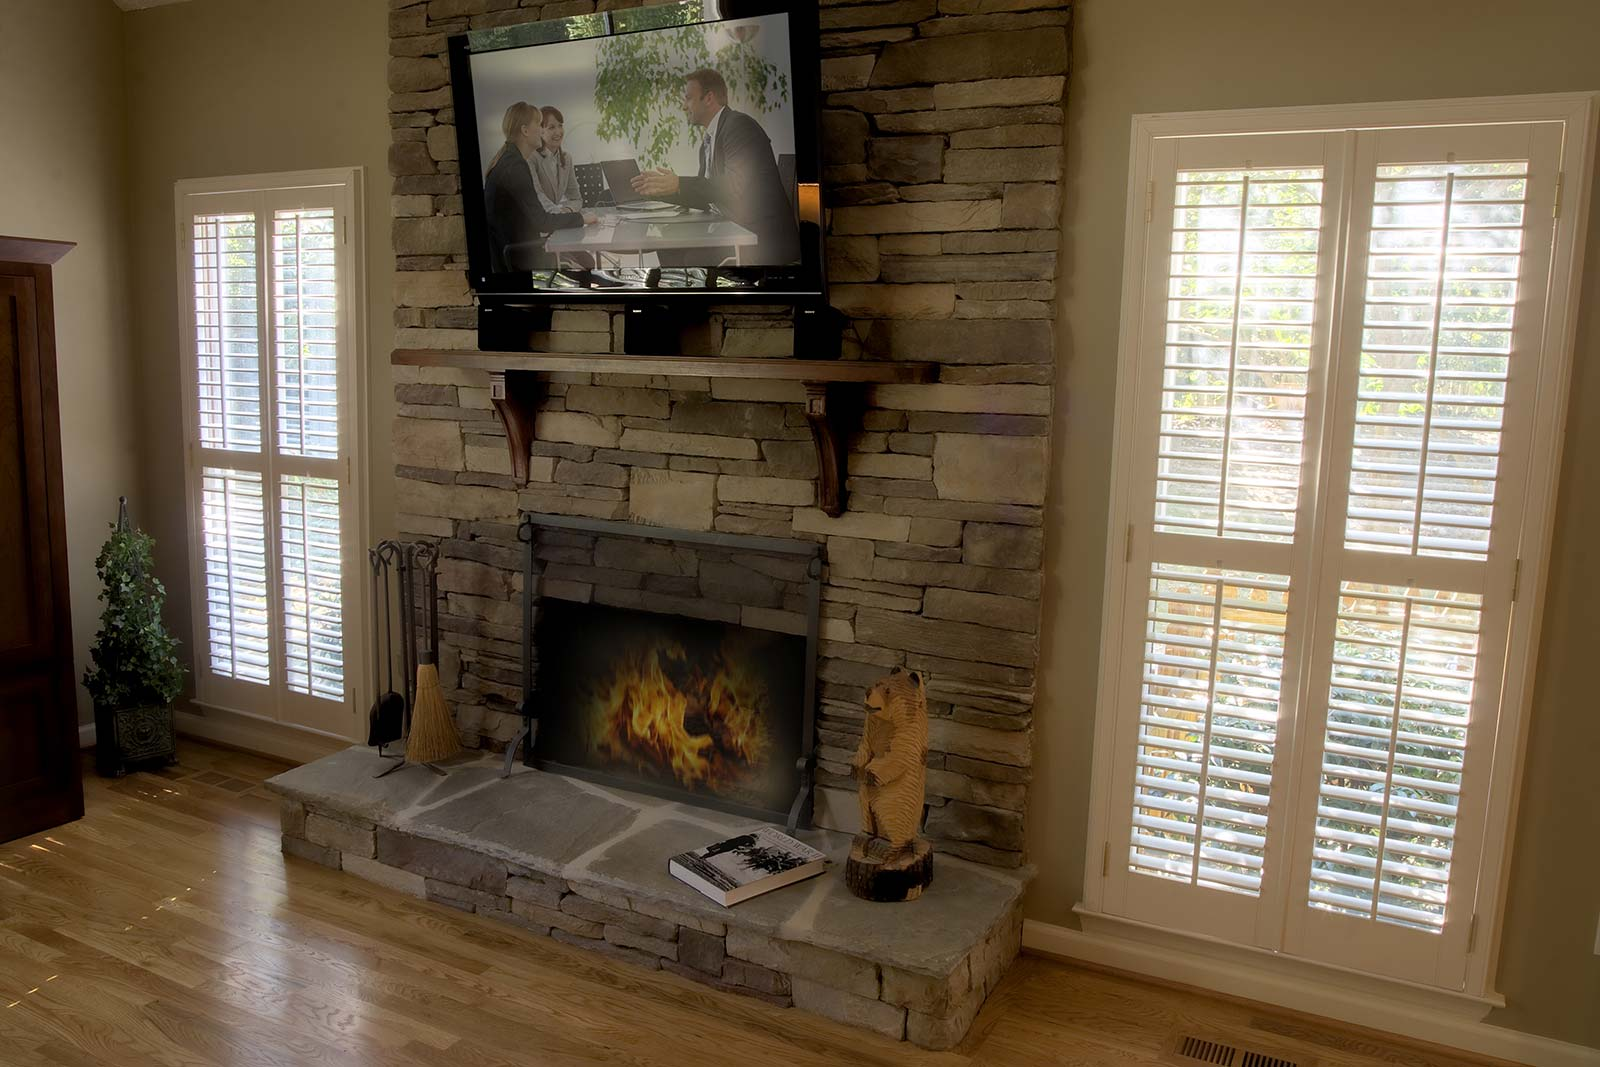 Stacked stone fireplace with tv monted above